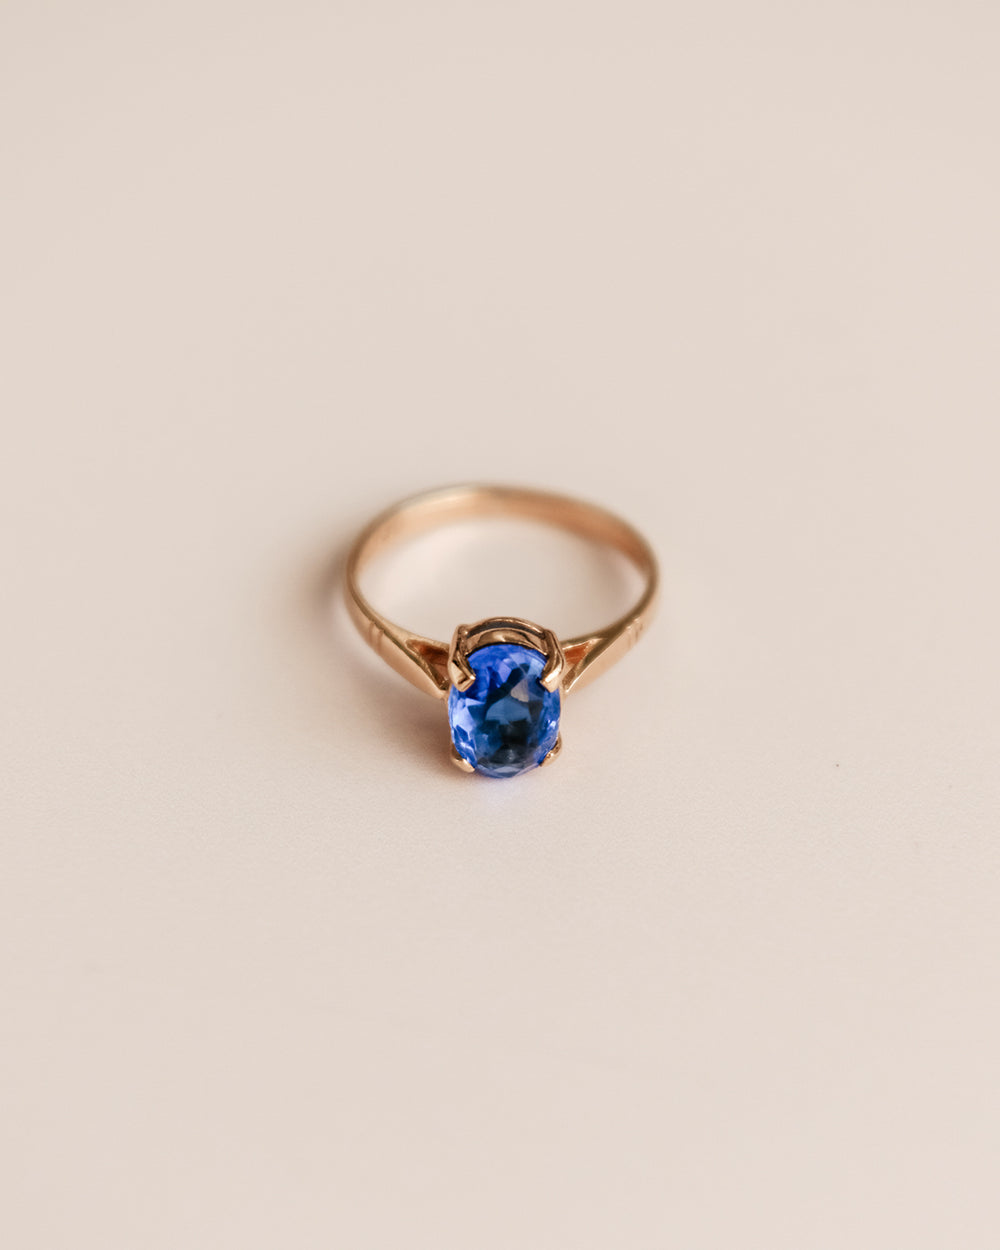 Joan Exclusive Vintage 9ct Gold Cocktail Ring